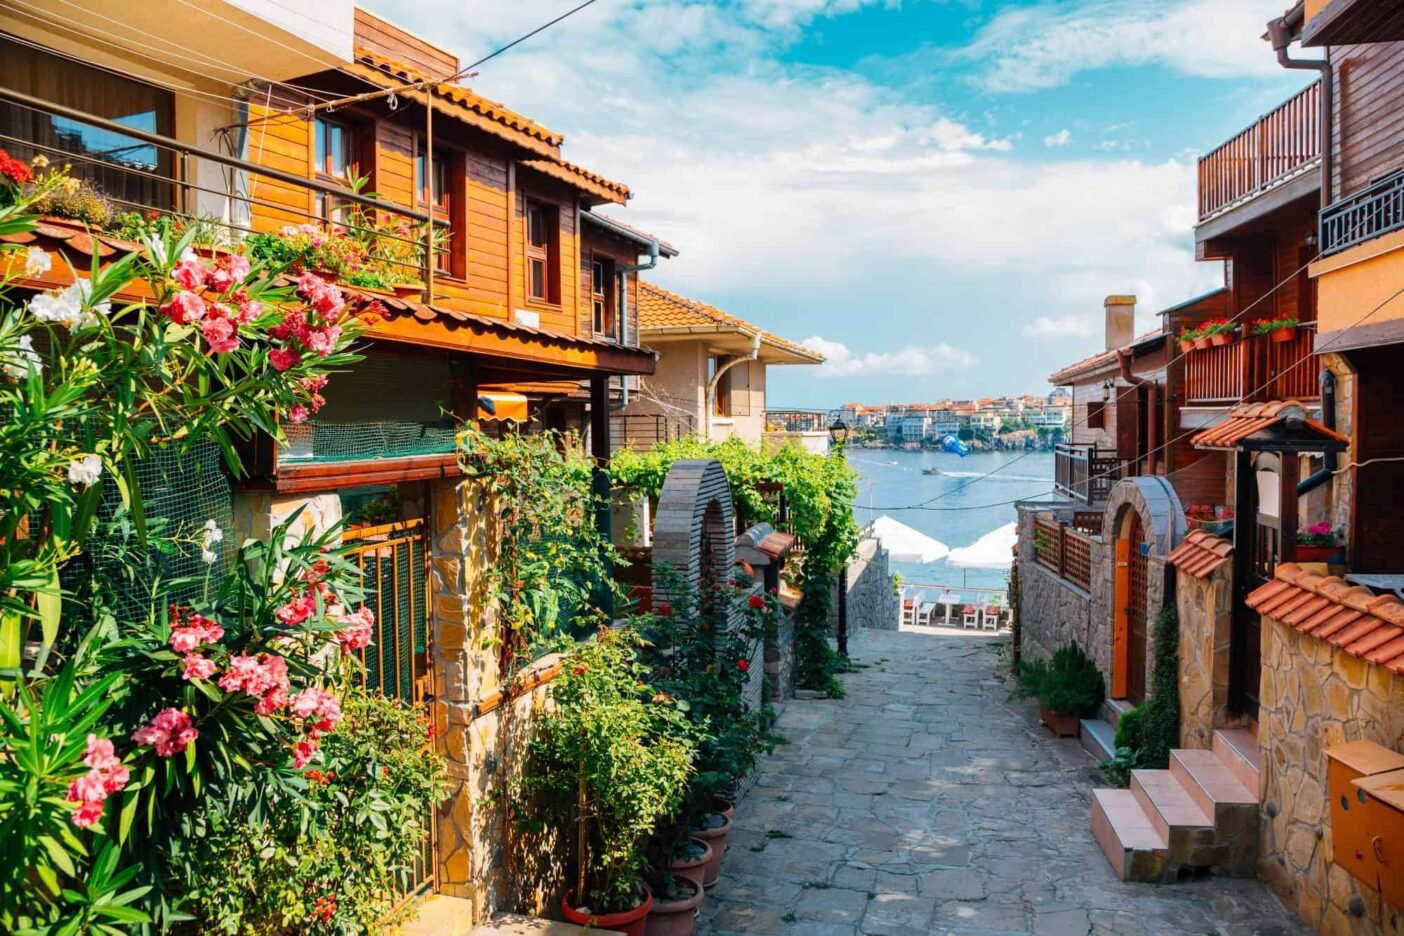 The pros and cons of living in Bulgaria